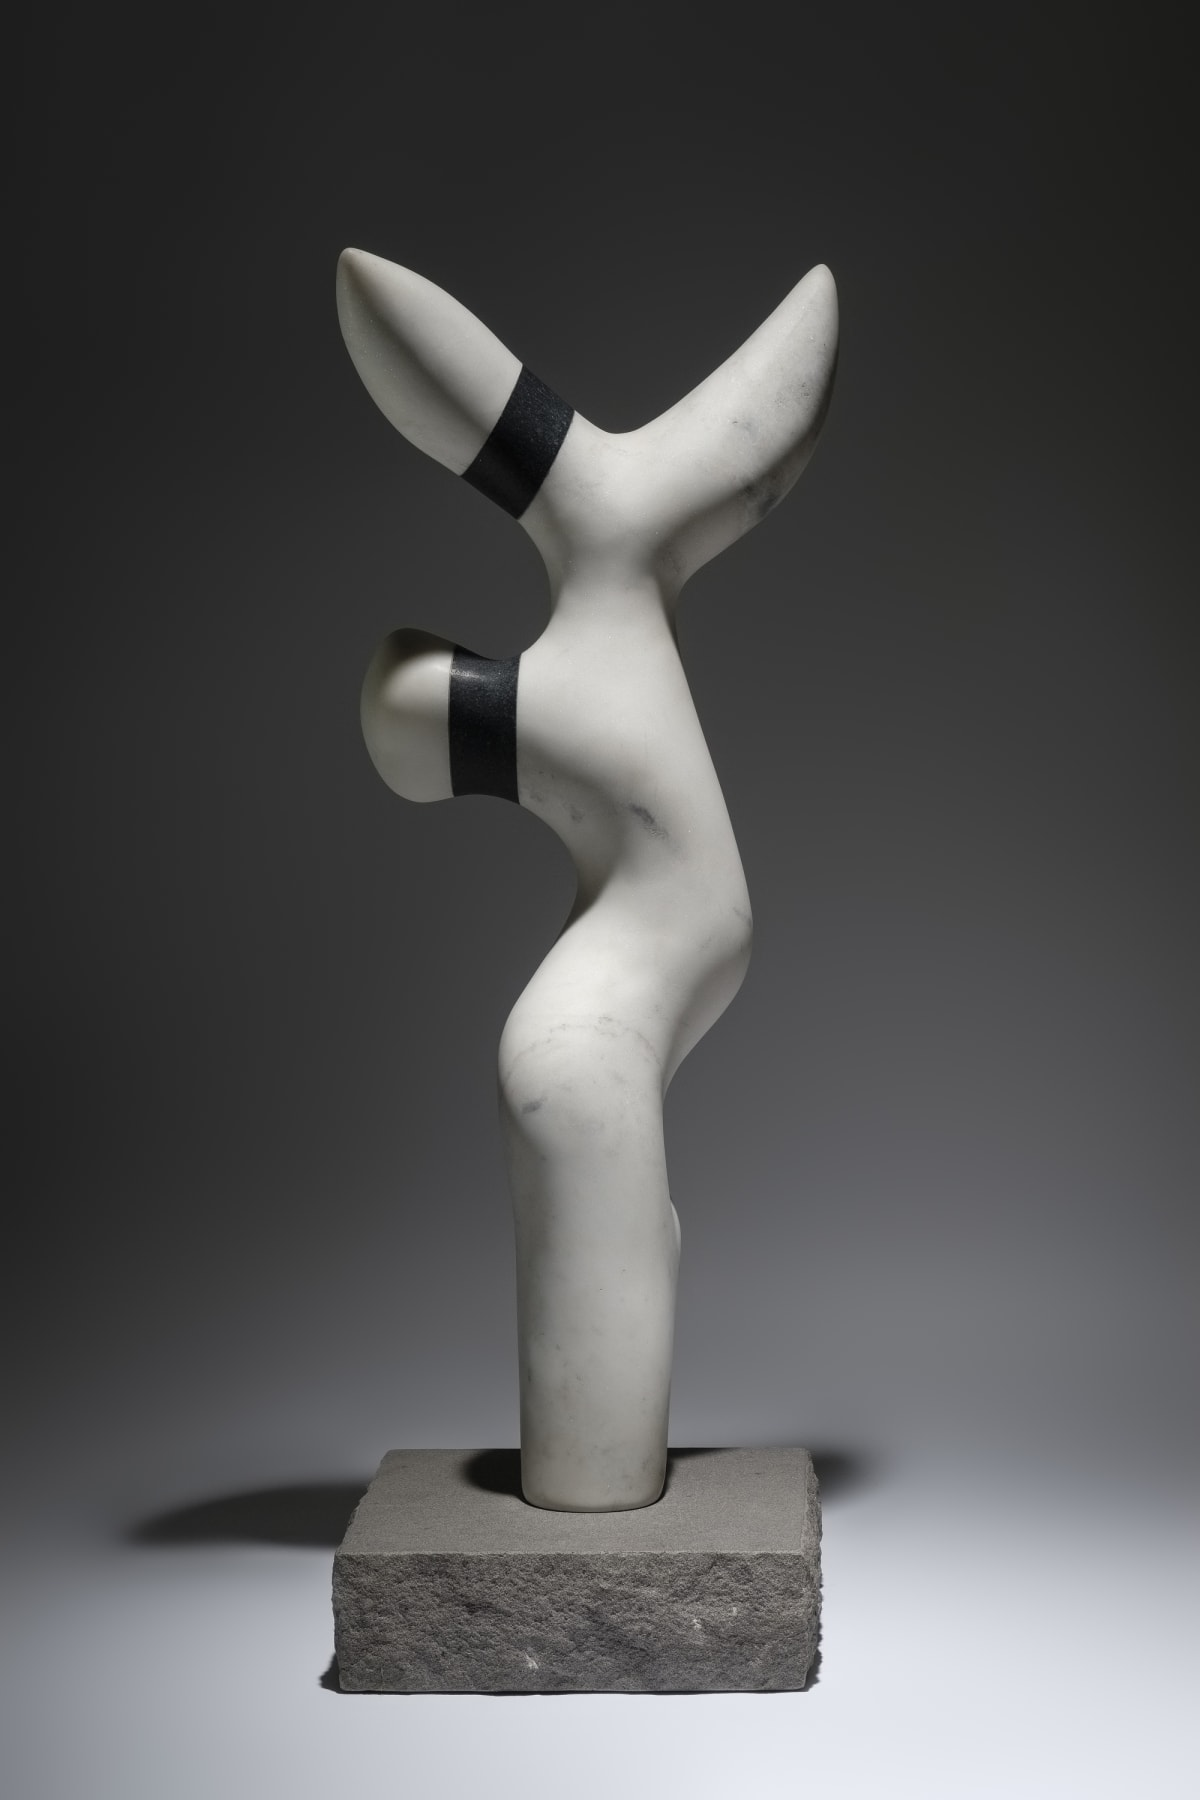 Lai Chi Man, Sprout 芽, 2005